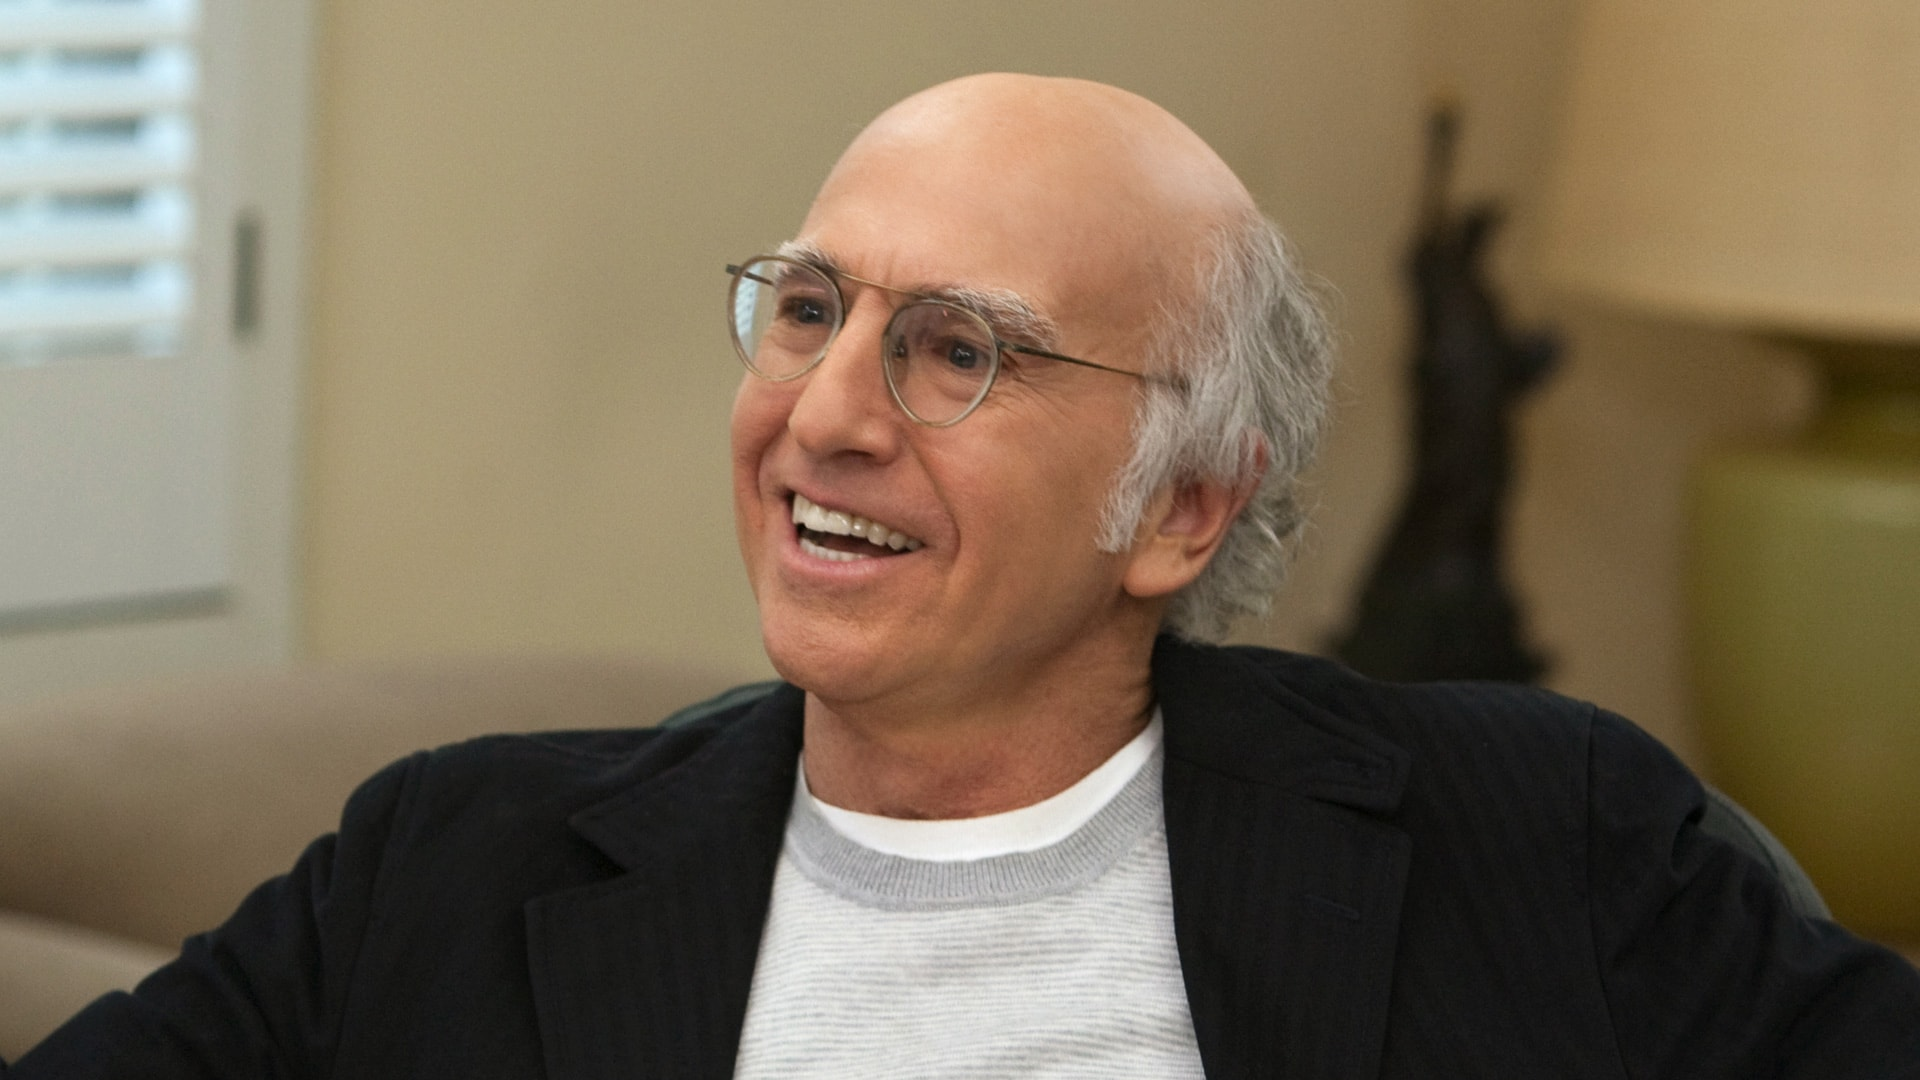 Larry David Widescreen for desktop